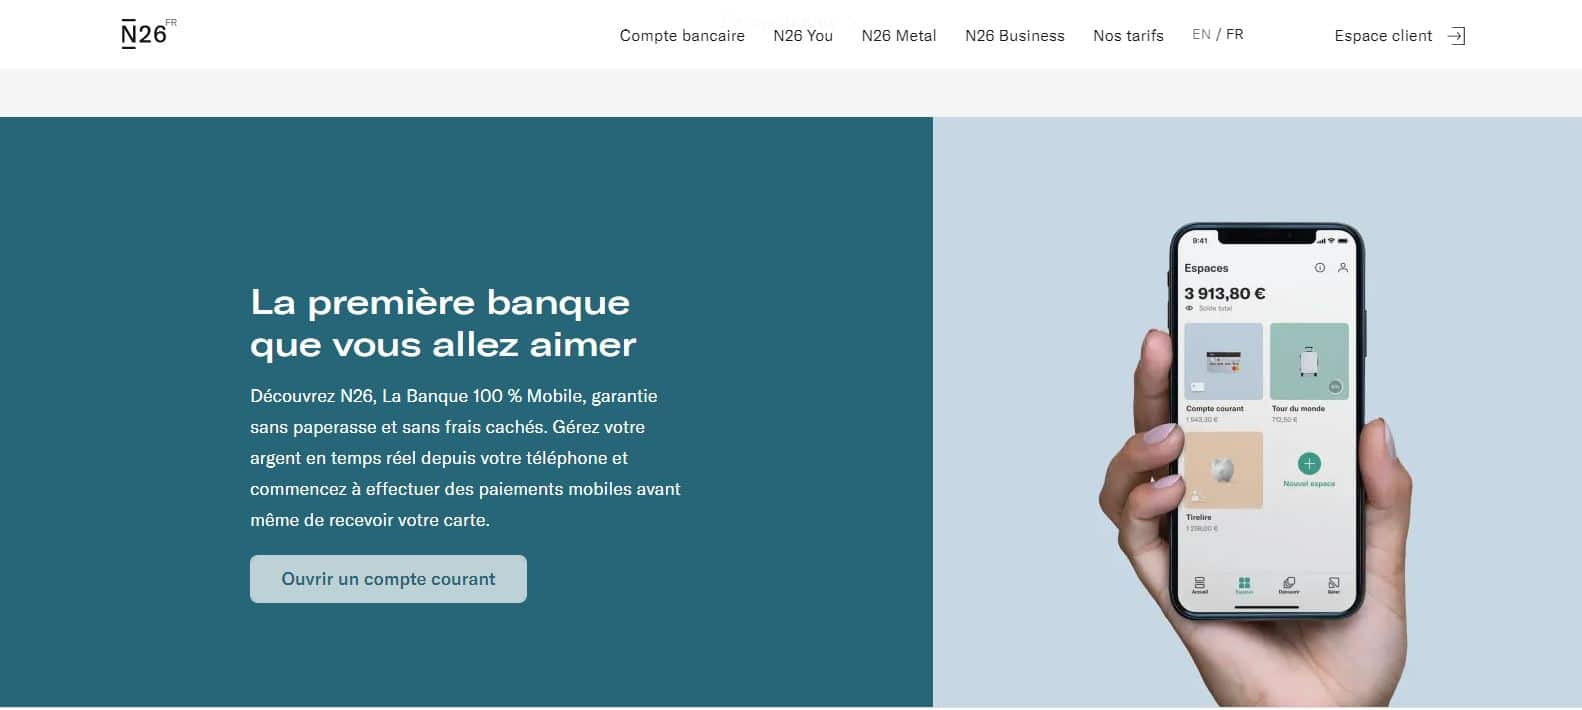 N26 particuliers